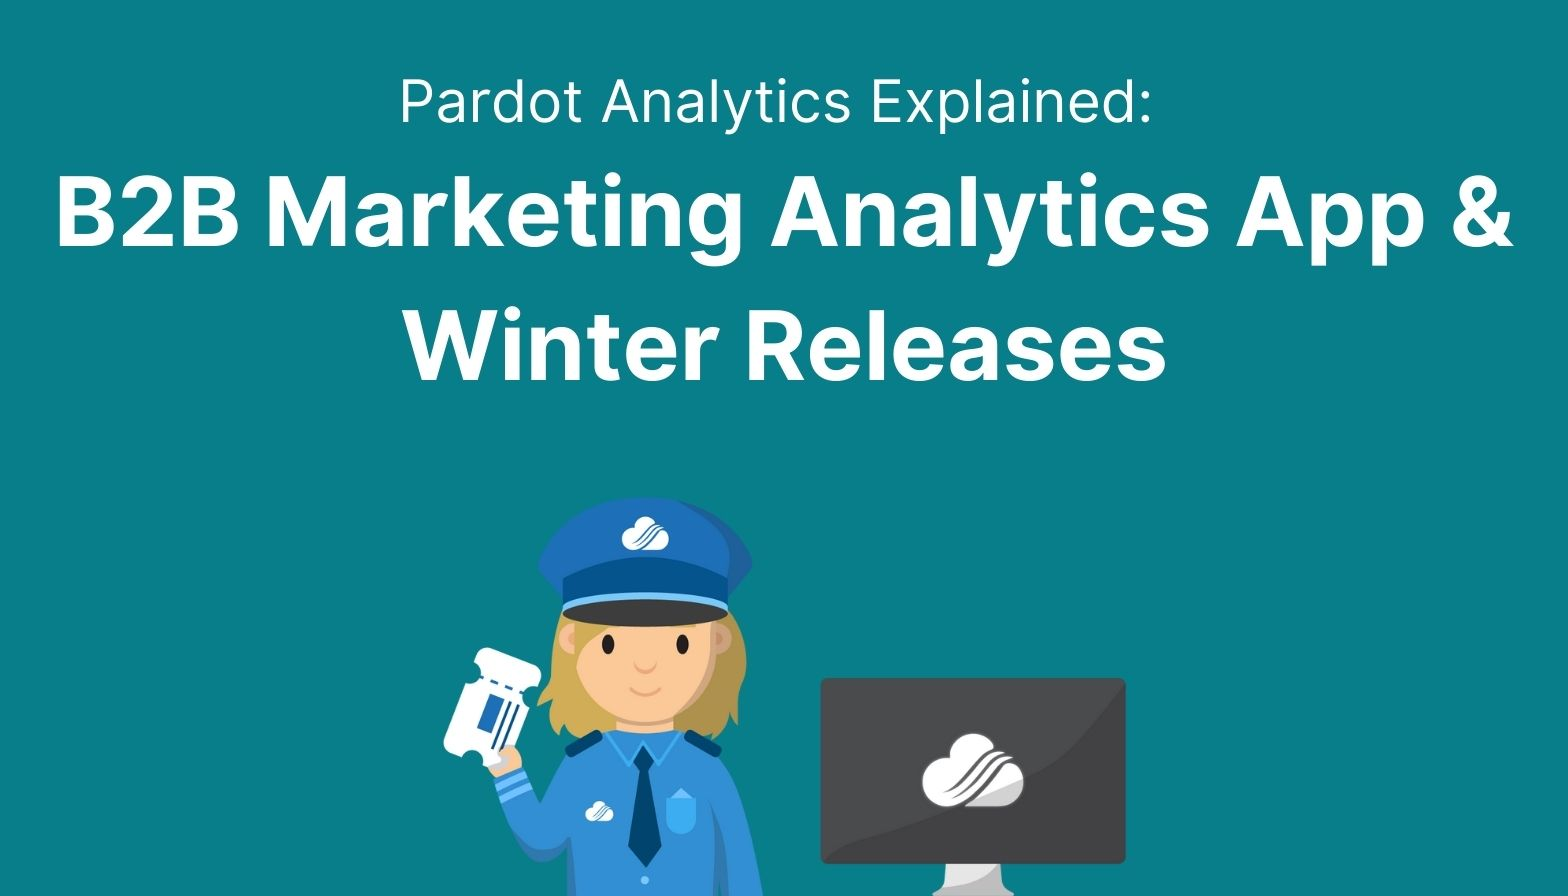 Feature image: Pardot analytics explained - B2B marketing analytics app and winter releases